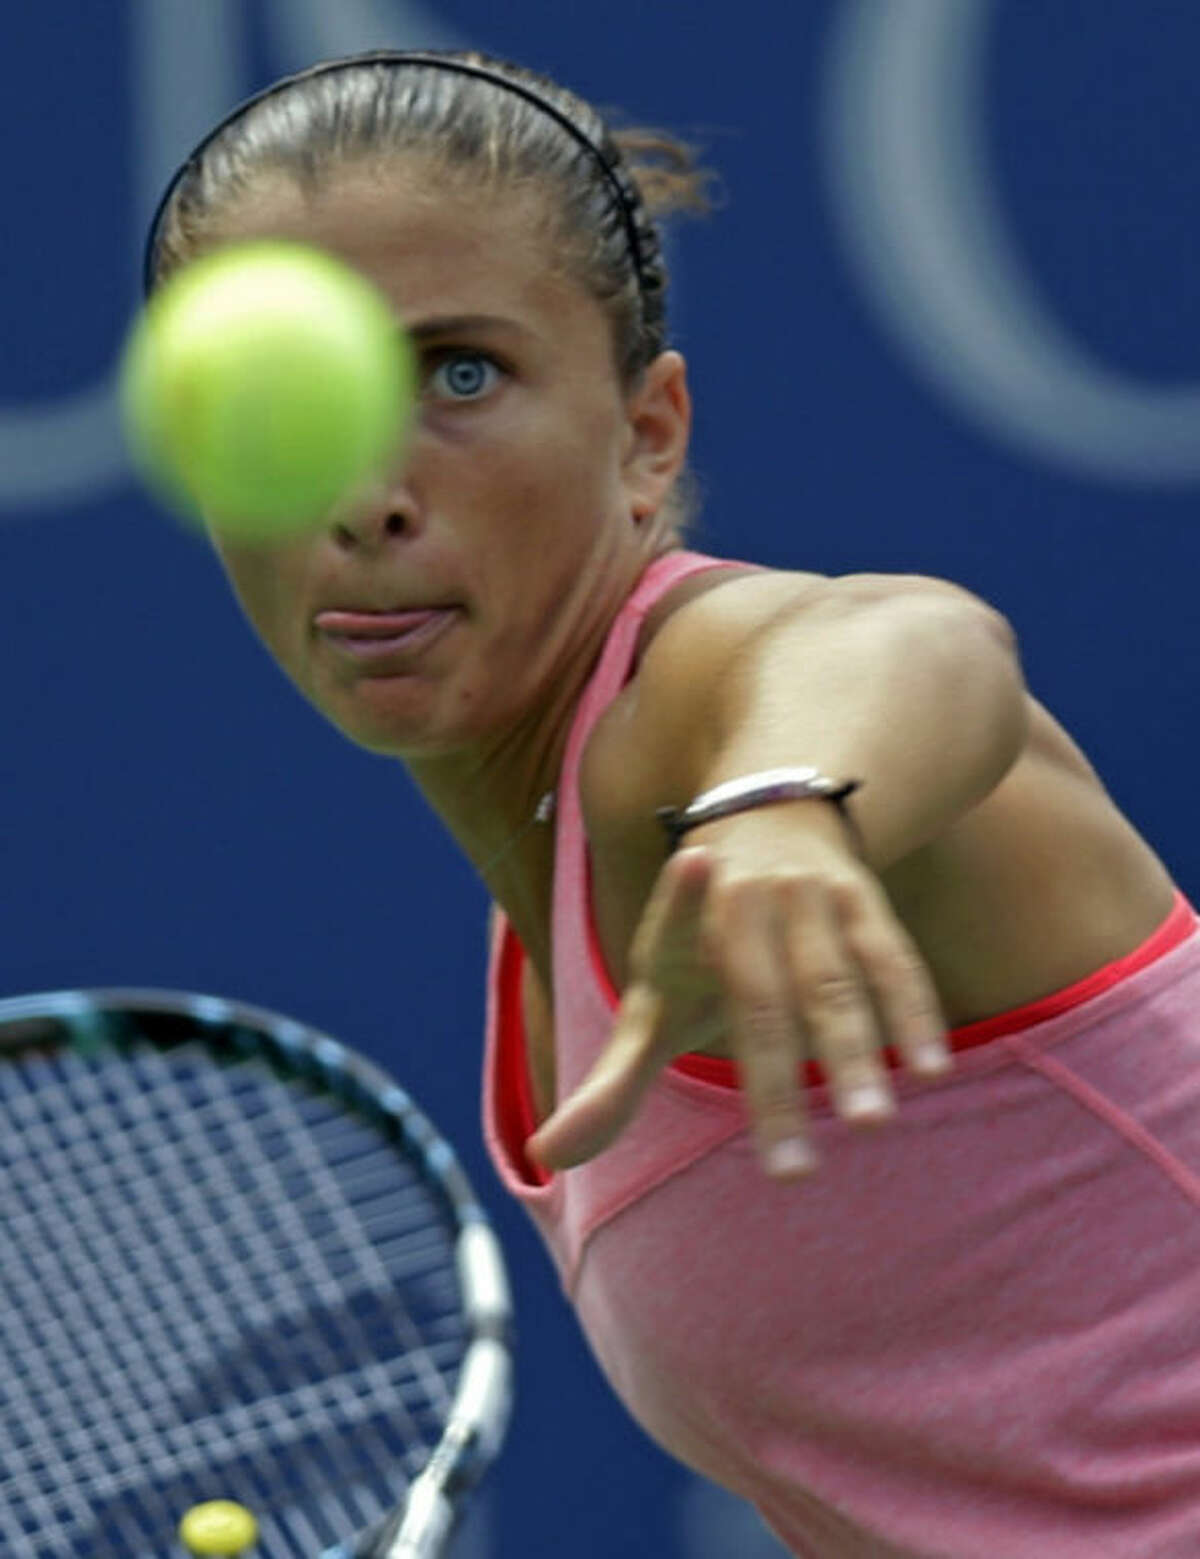 Sara Errani, of Italy, winds up to return a shot to Flavia Pennetta, of Italy, during the second round of the 2013 U.S. Open tennis tournament, Thursday, Aug. 29, 2013, in New York. (AP Photo/Kathy Willens)